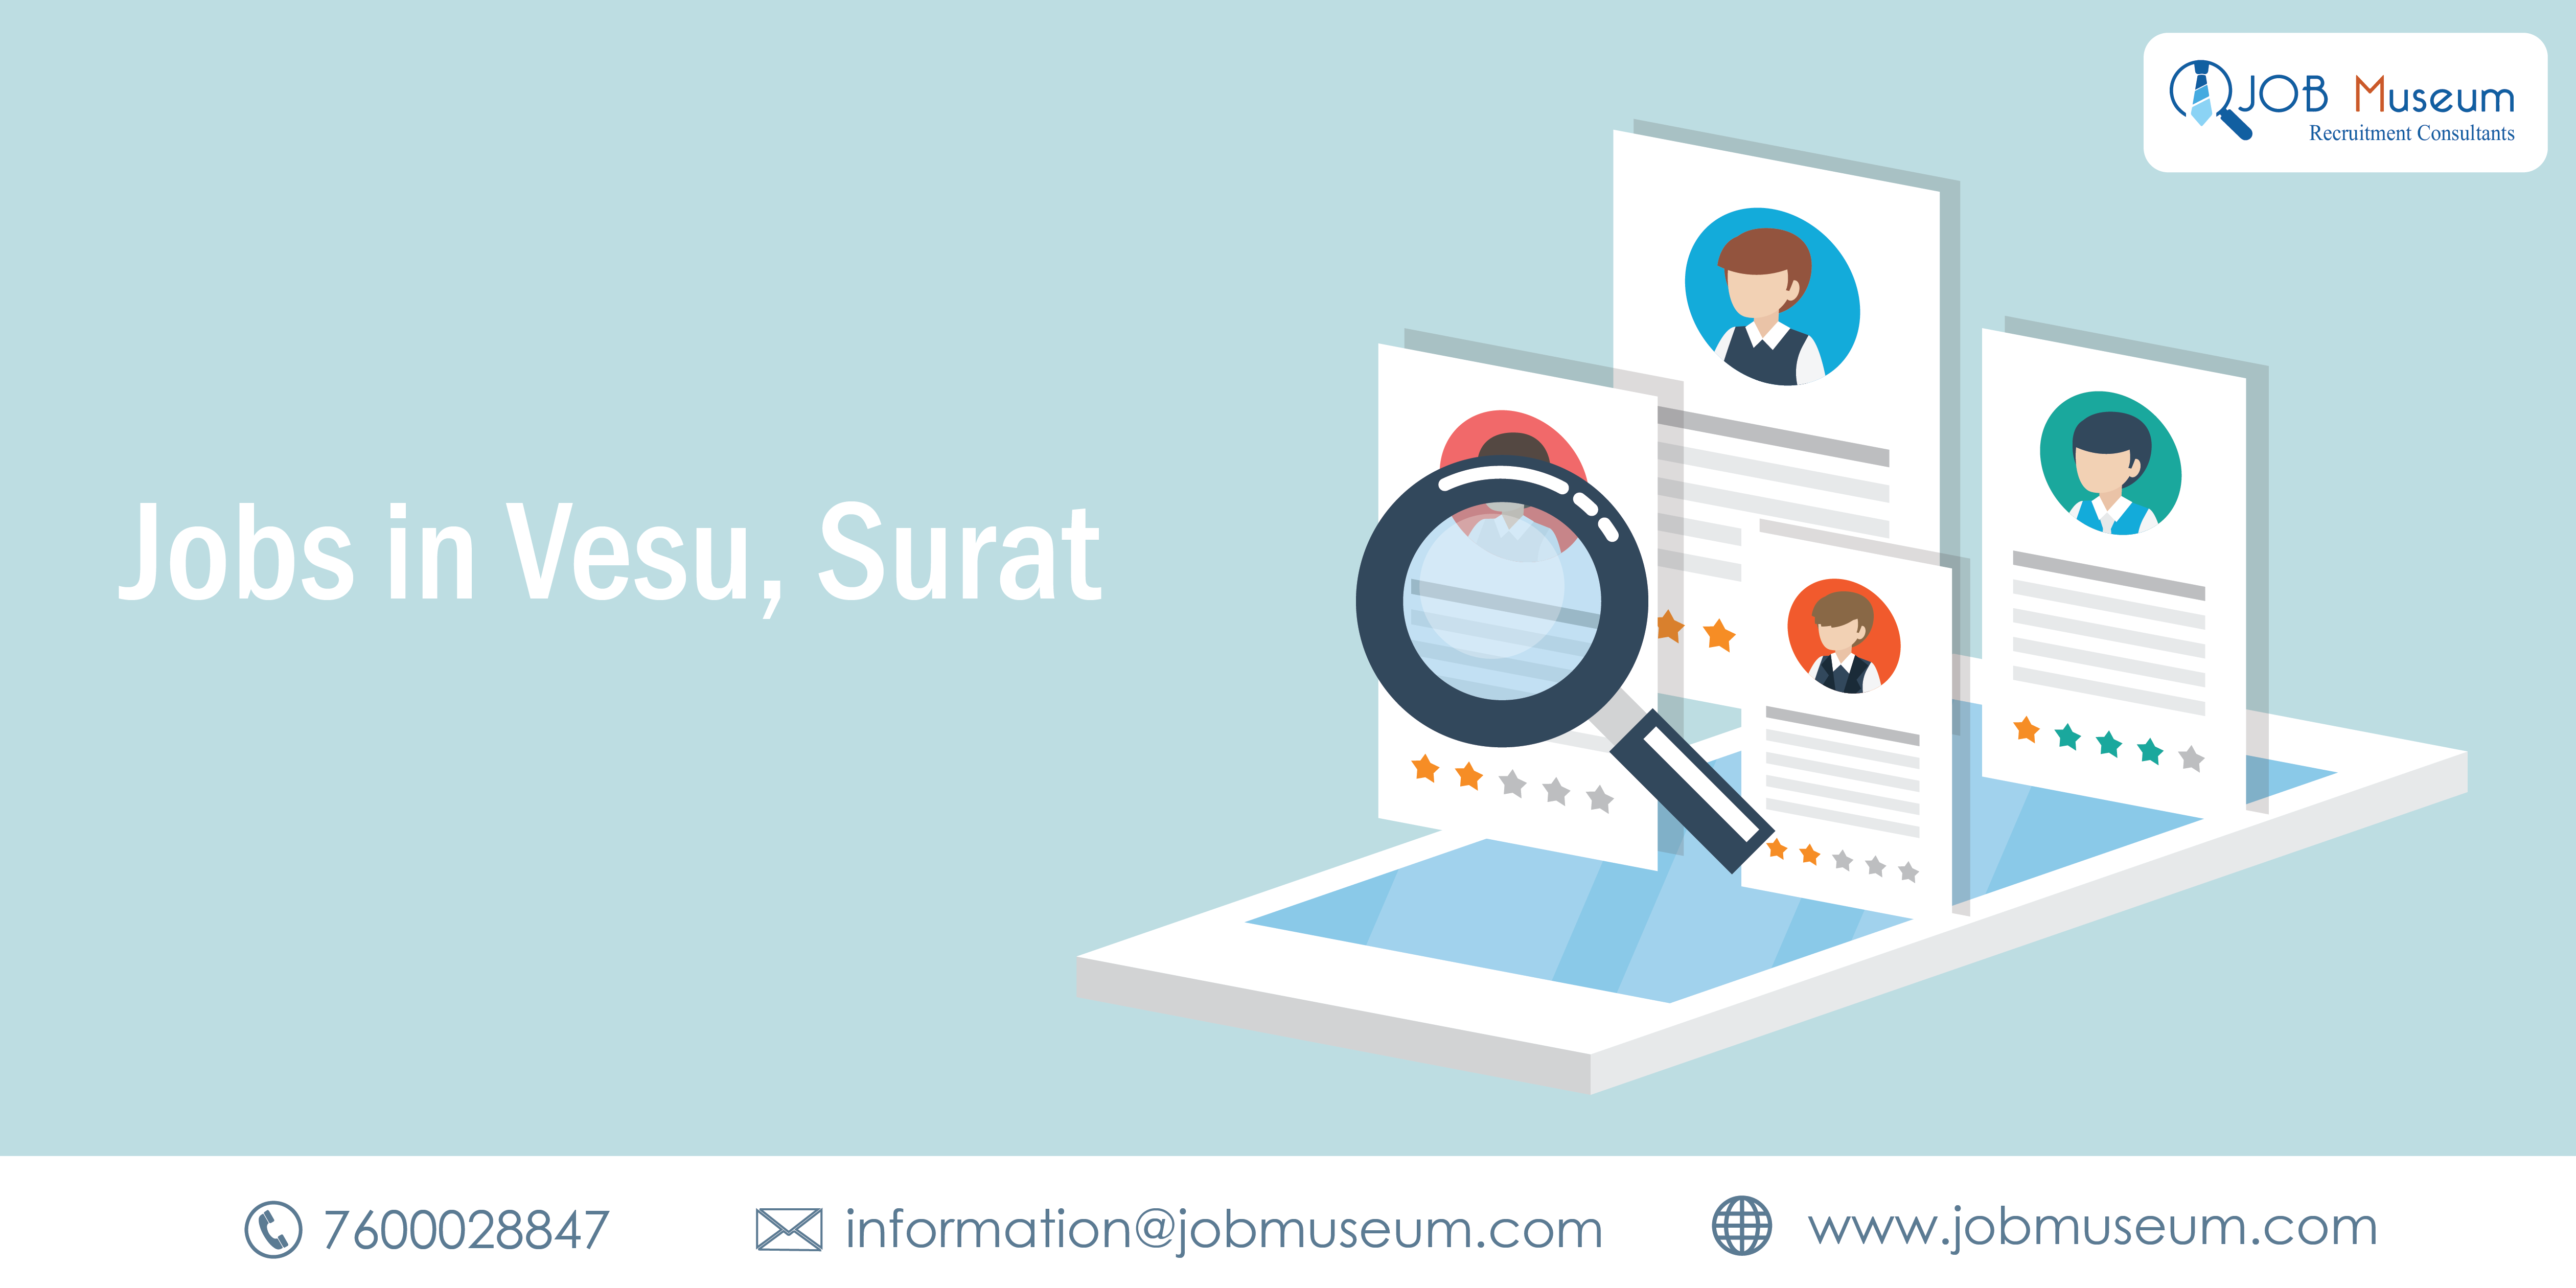 Jobs in Vesu, Surat